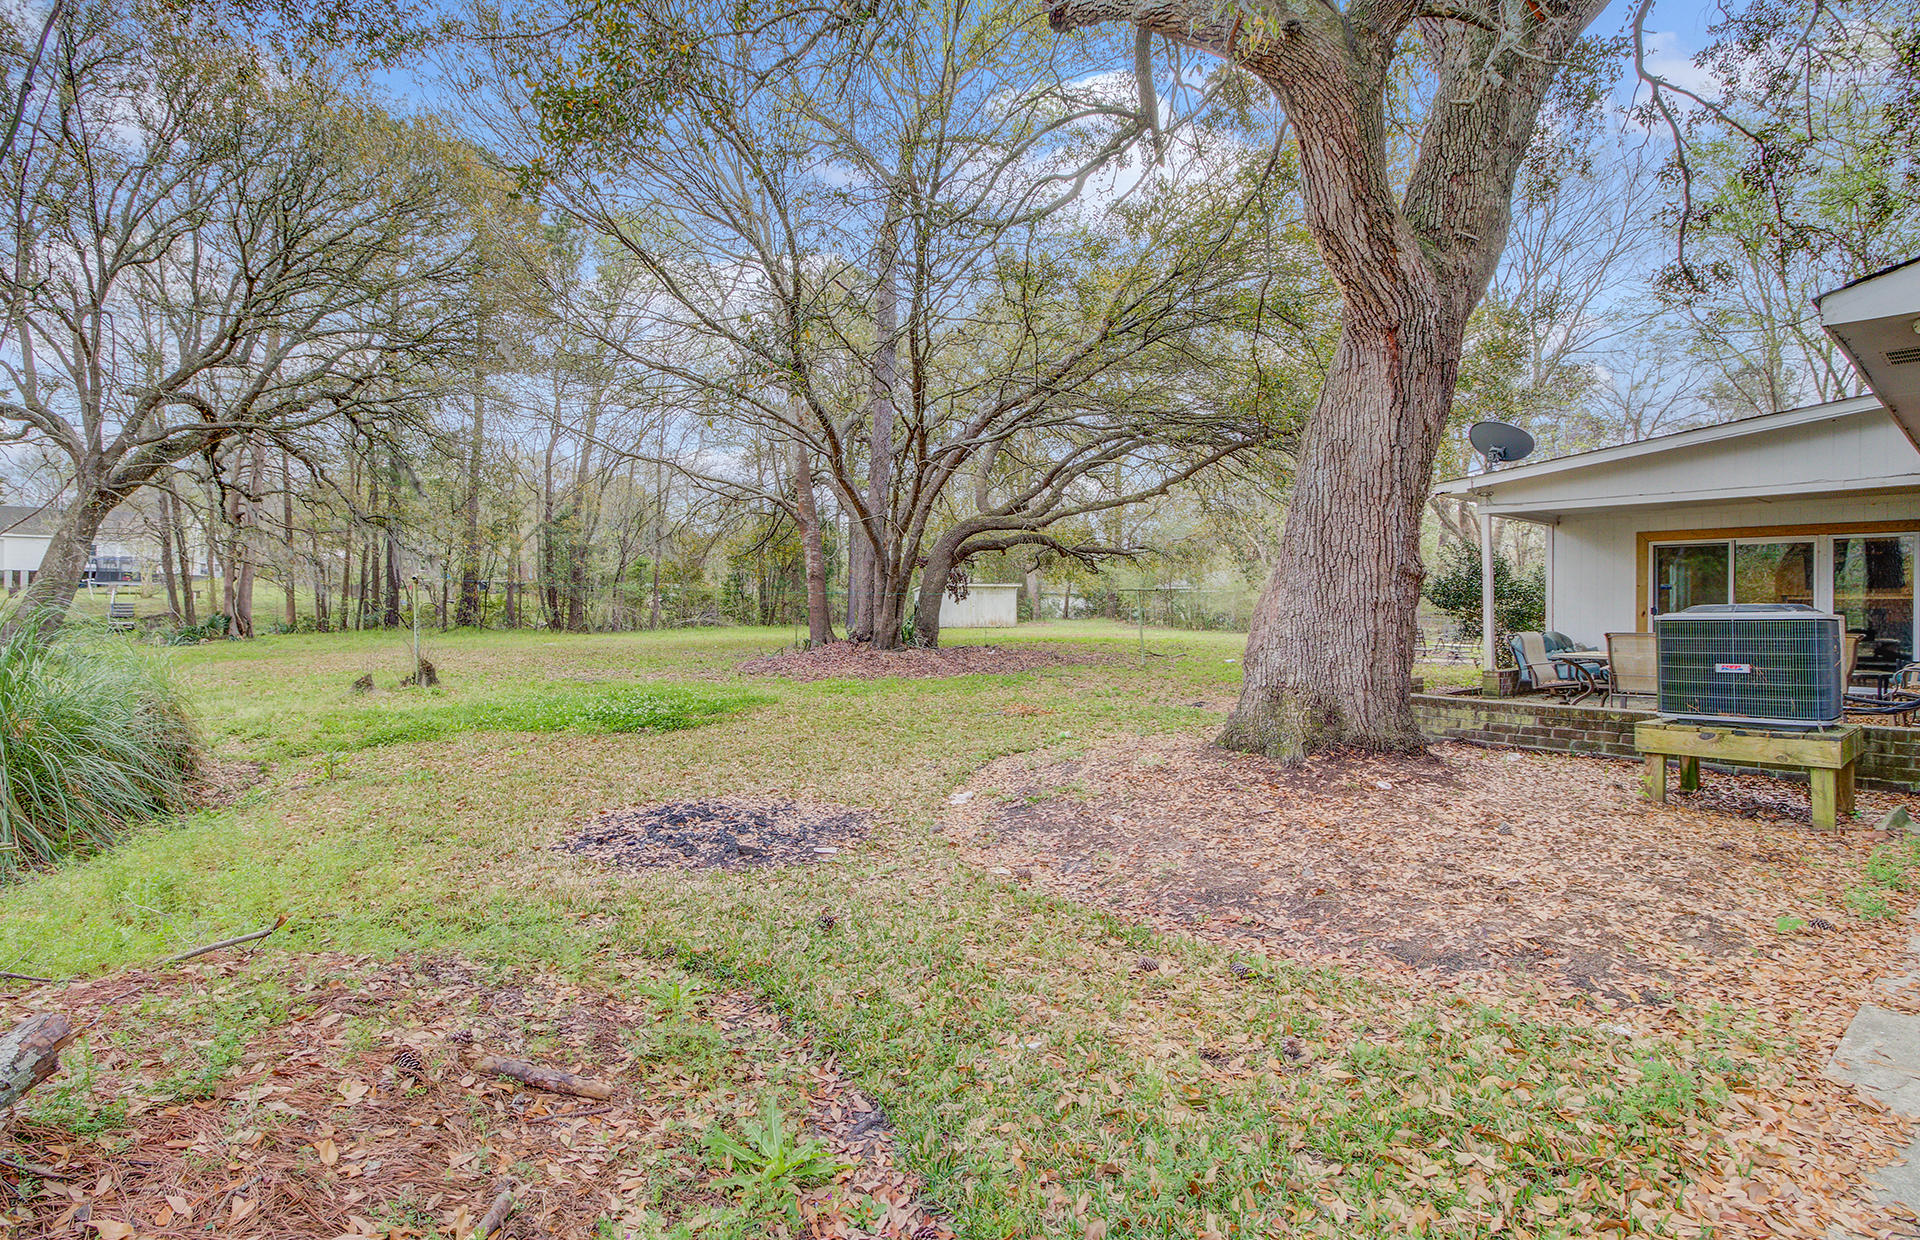 Tranquil Acres Homes For Sale - 96 Tranquil, Ladson, SC - 7